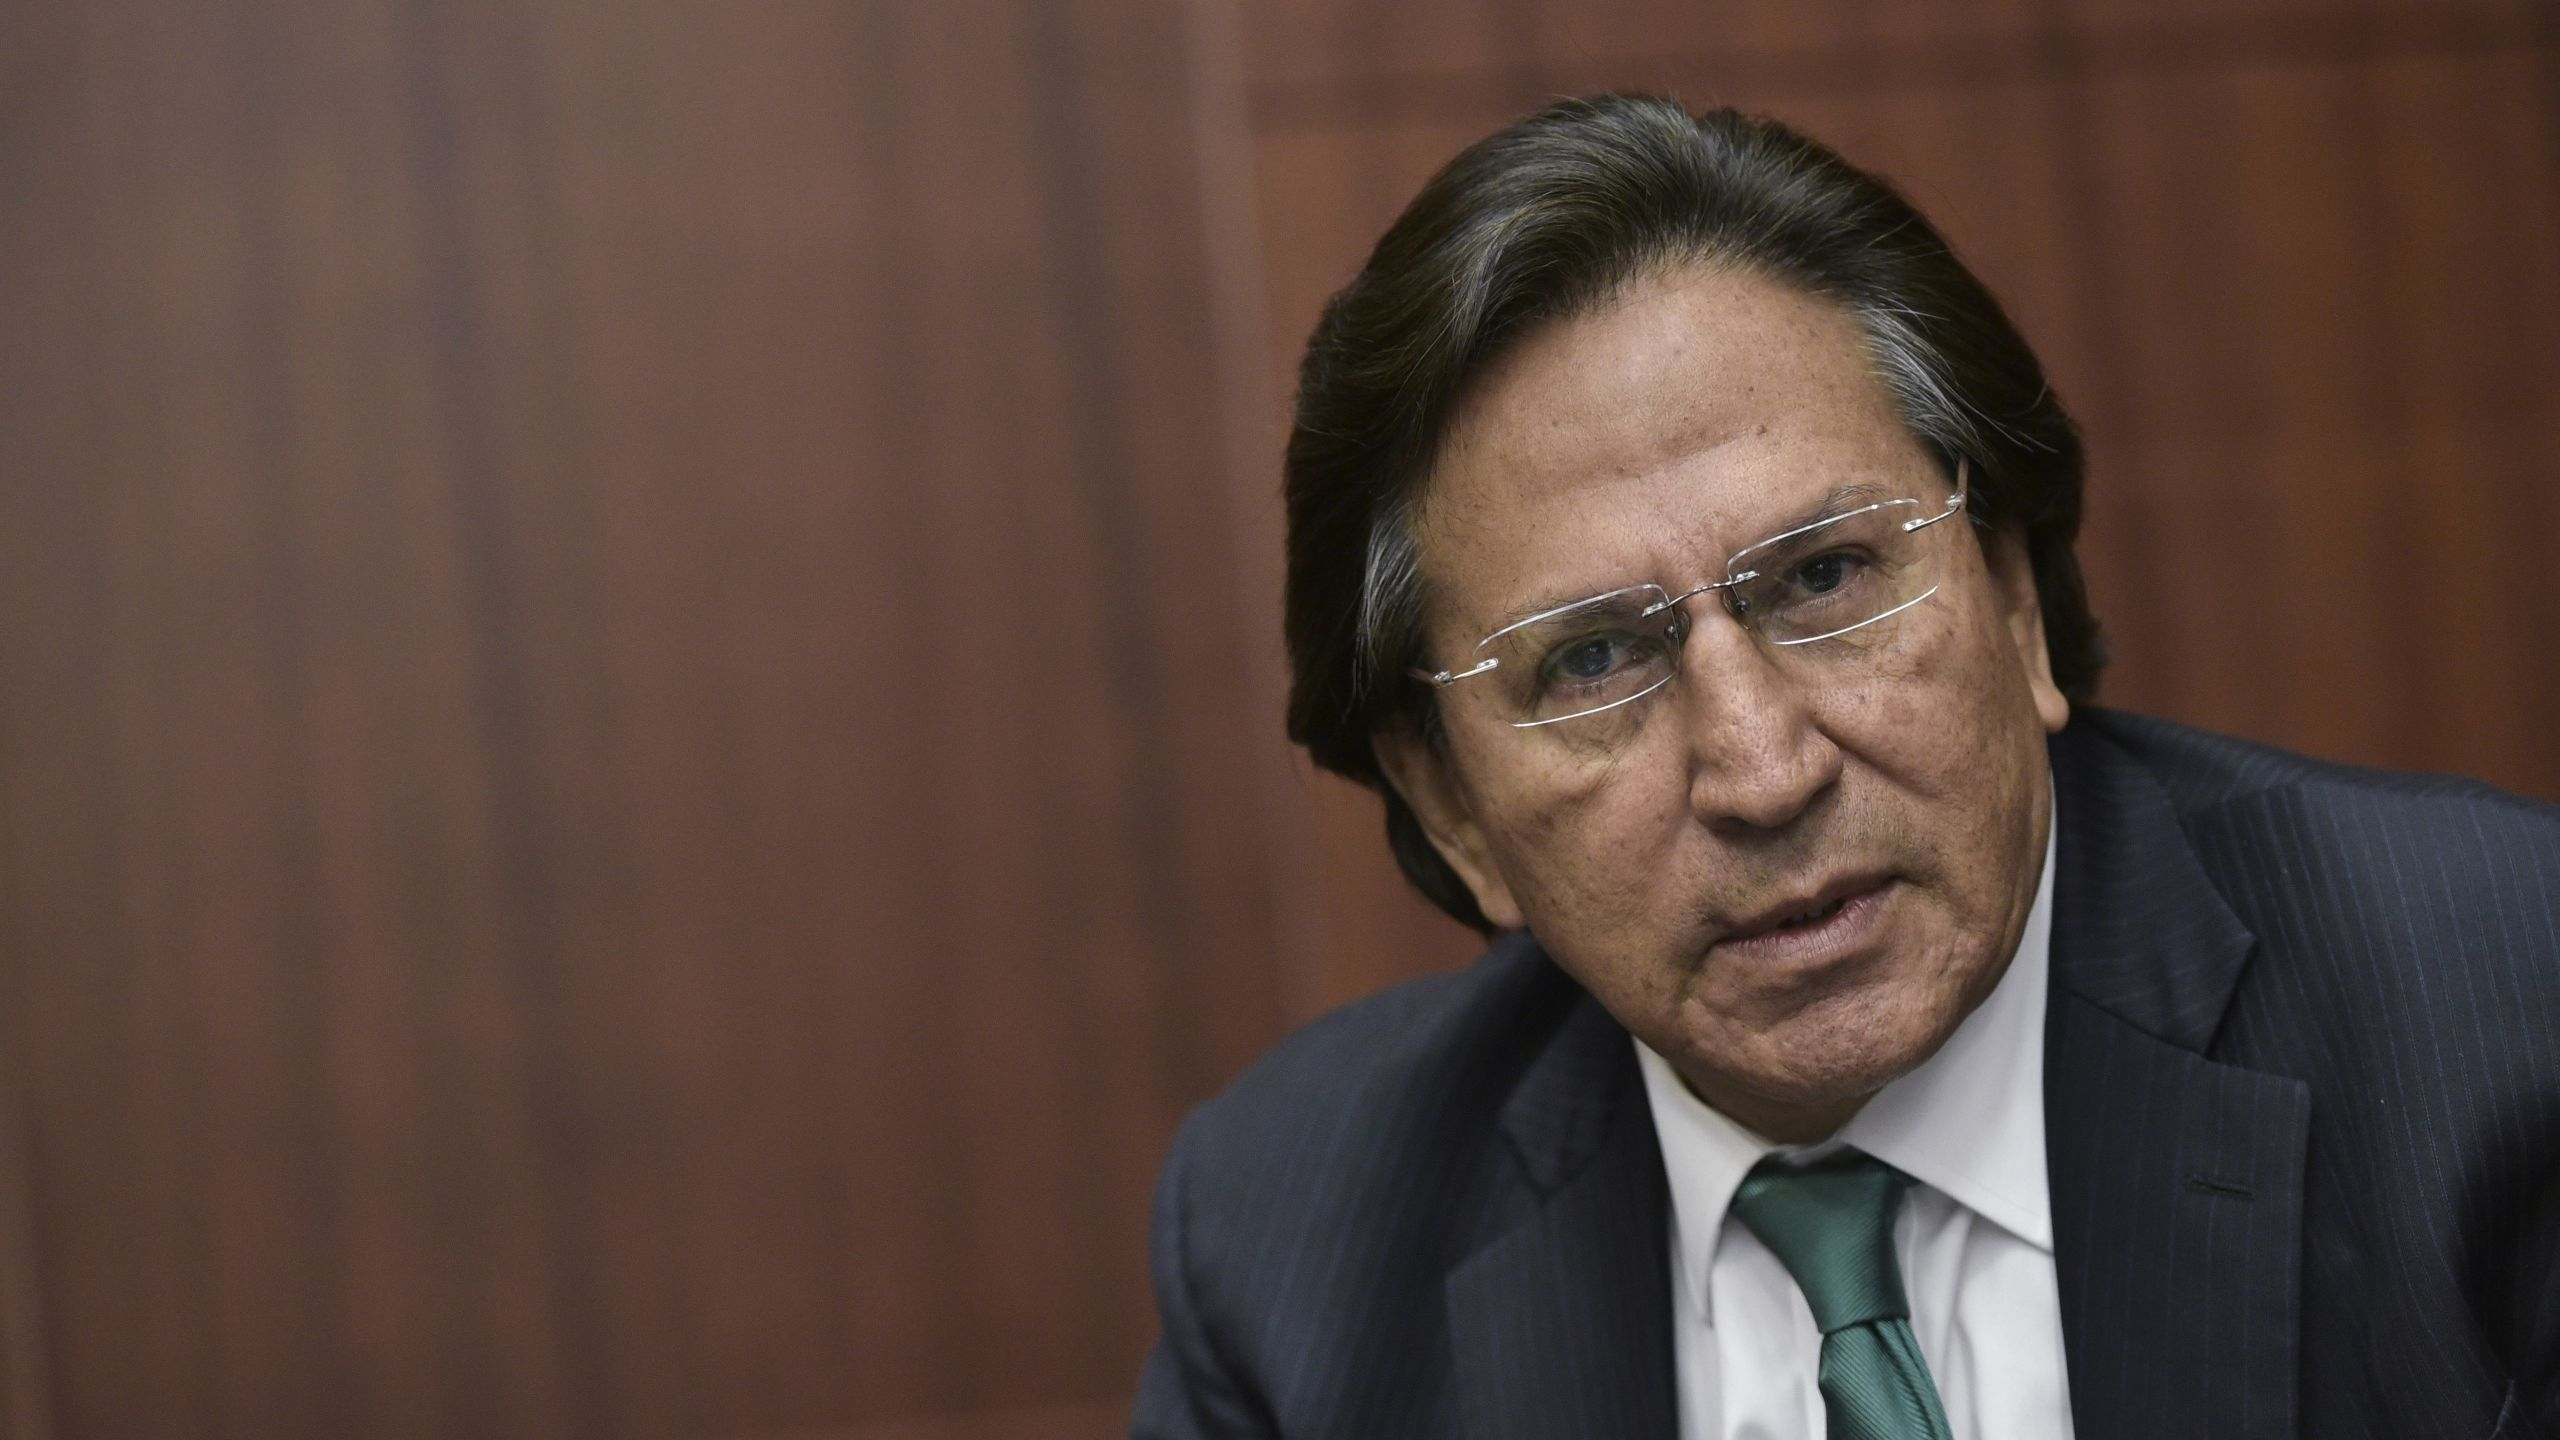 Former President of Peru Alejandro Toledo speaks during a discussion on Venezuela and the OAS at The Center for Strategic and International Studies (CSIS) on June 17, 2016 in Washington, DC. (Credit: MANDEL NGAN/AFP/Getty Images)